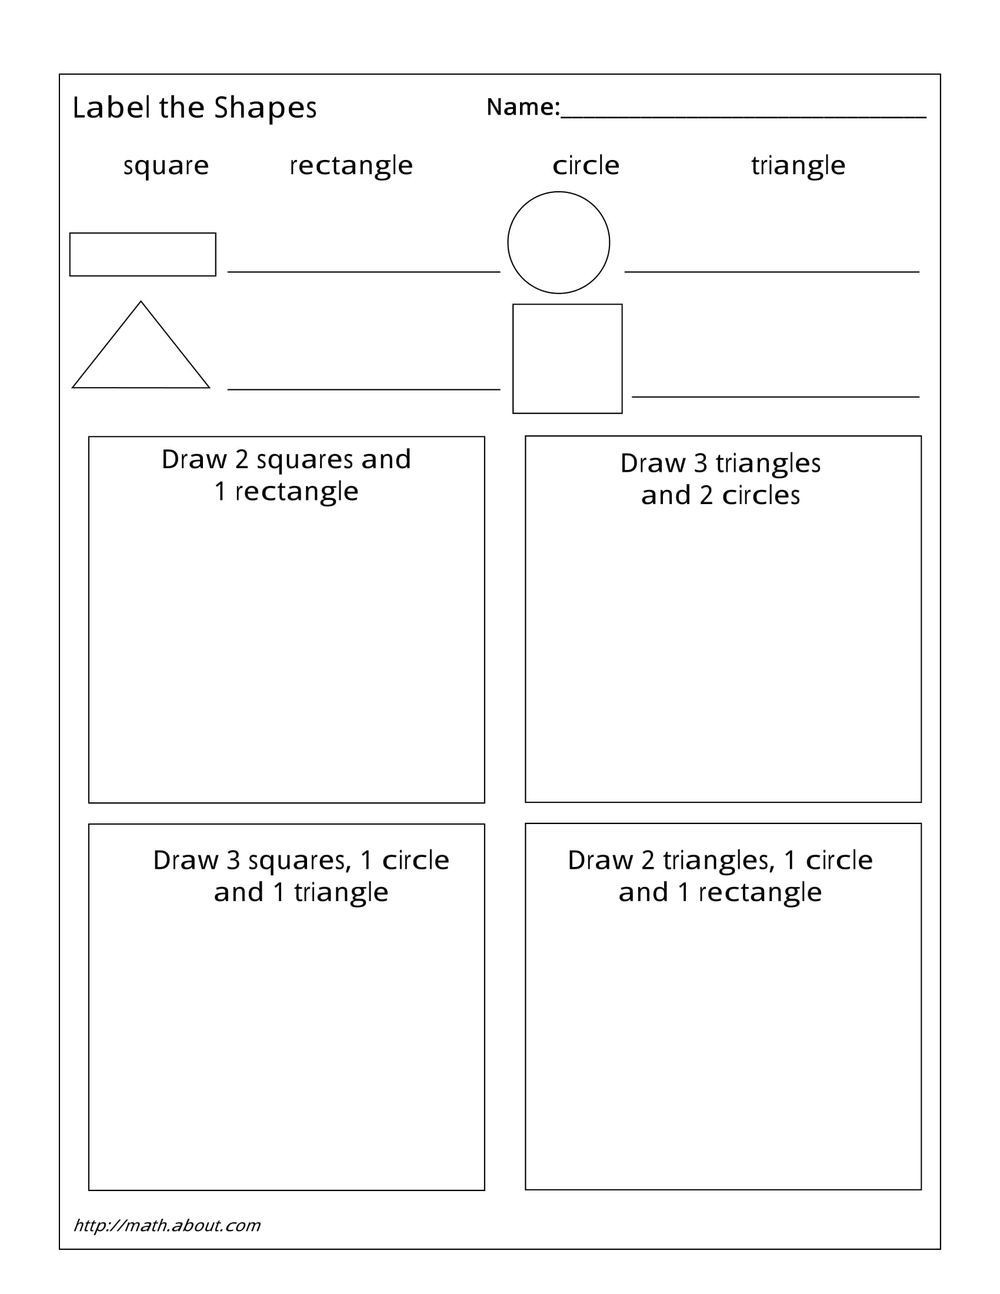 Polygon Worksheets 4th Grade 1st Grade Geometry Worksheets for Students